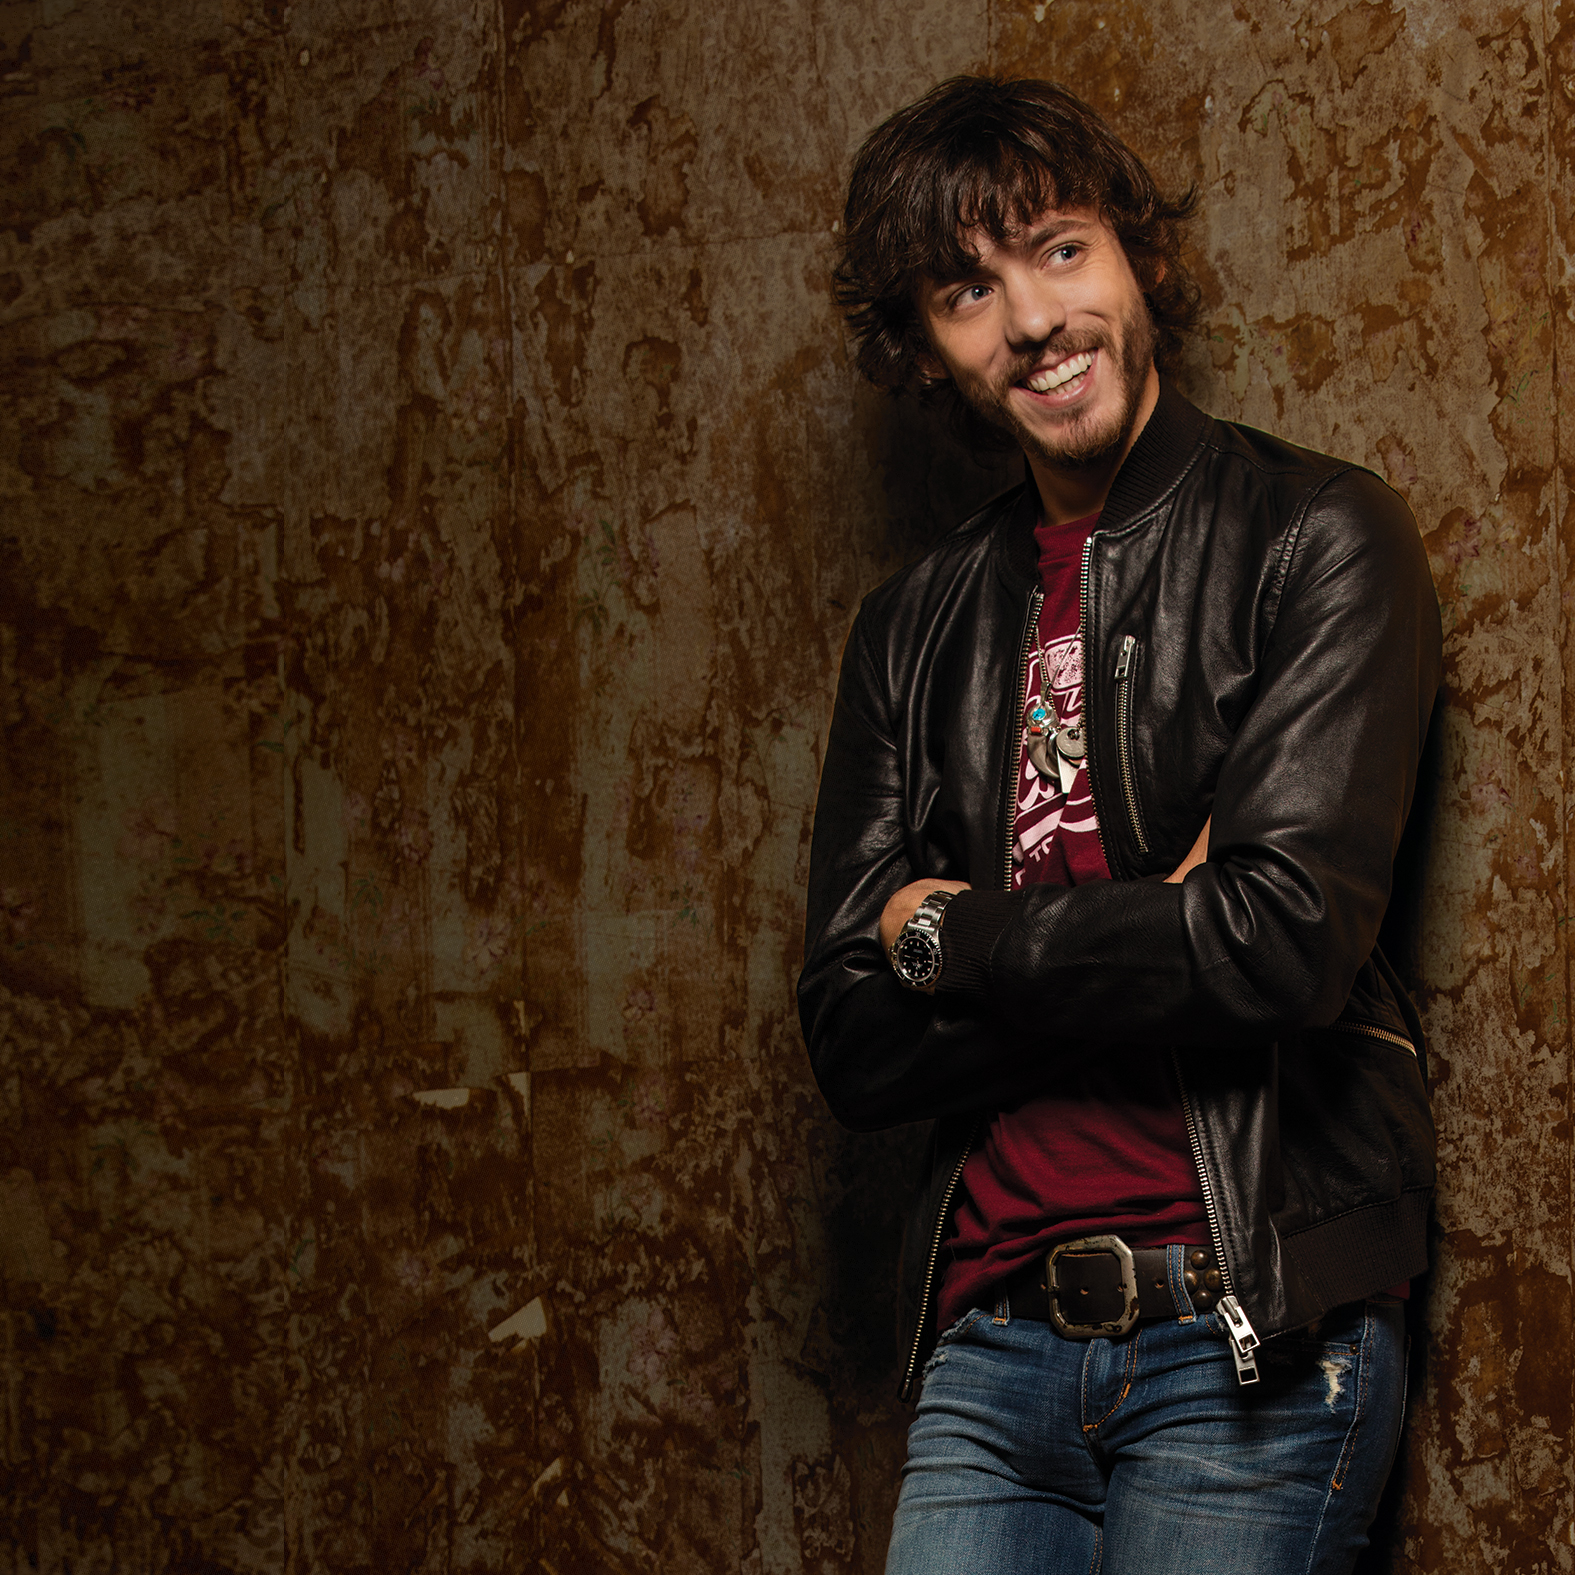 Chris Janson: CHRIS JANSON SET TO PERFORM ON LATE NIGHT WITH SETH MEYERS